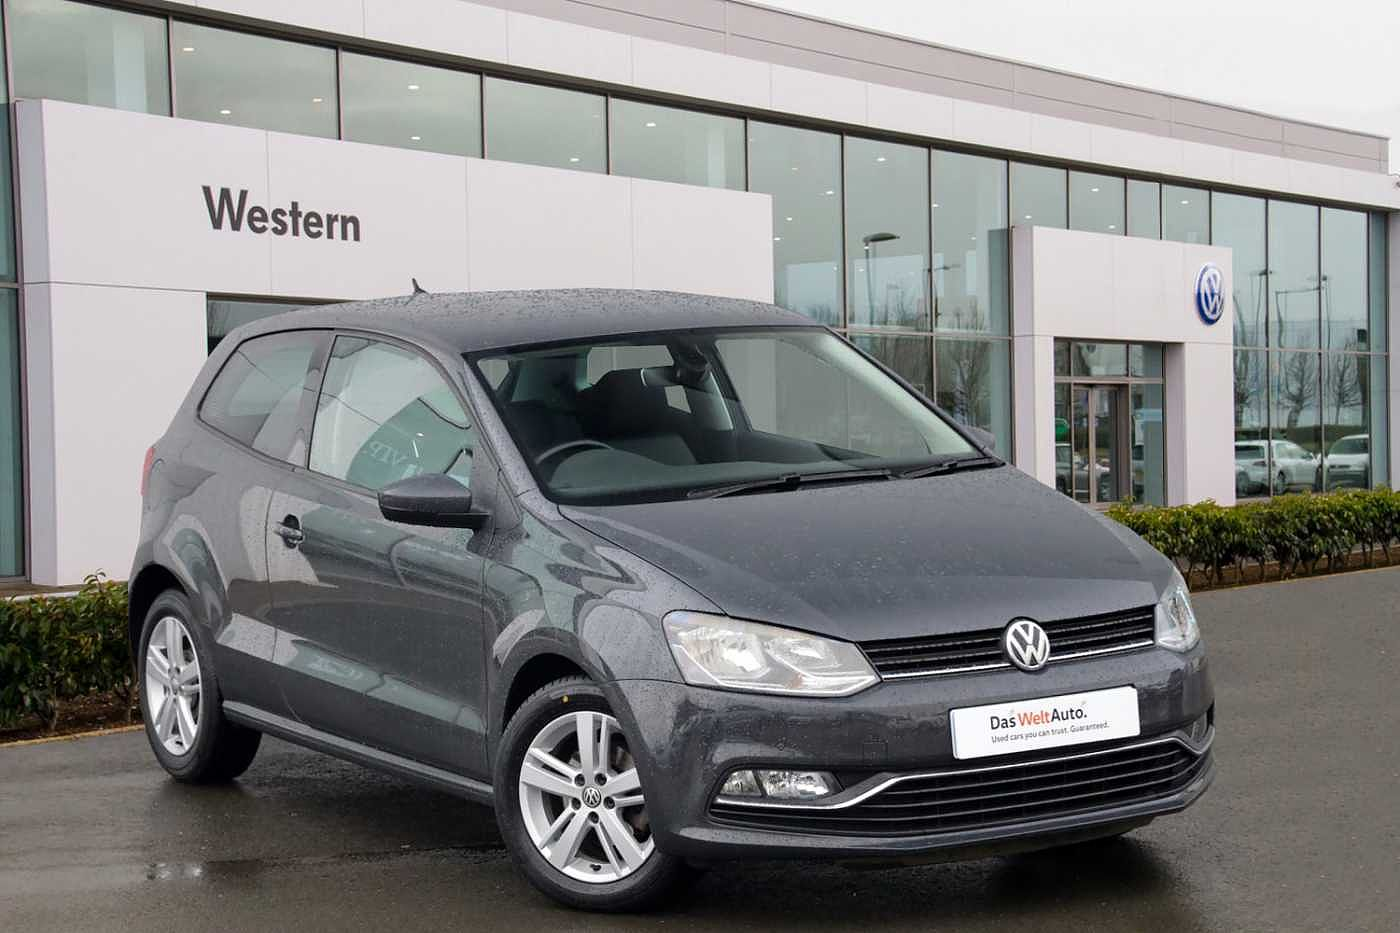 2017 Polo 1.0 Match 60PS 3Dr Hatchback for Sale in Edinburgh